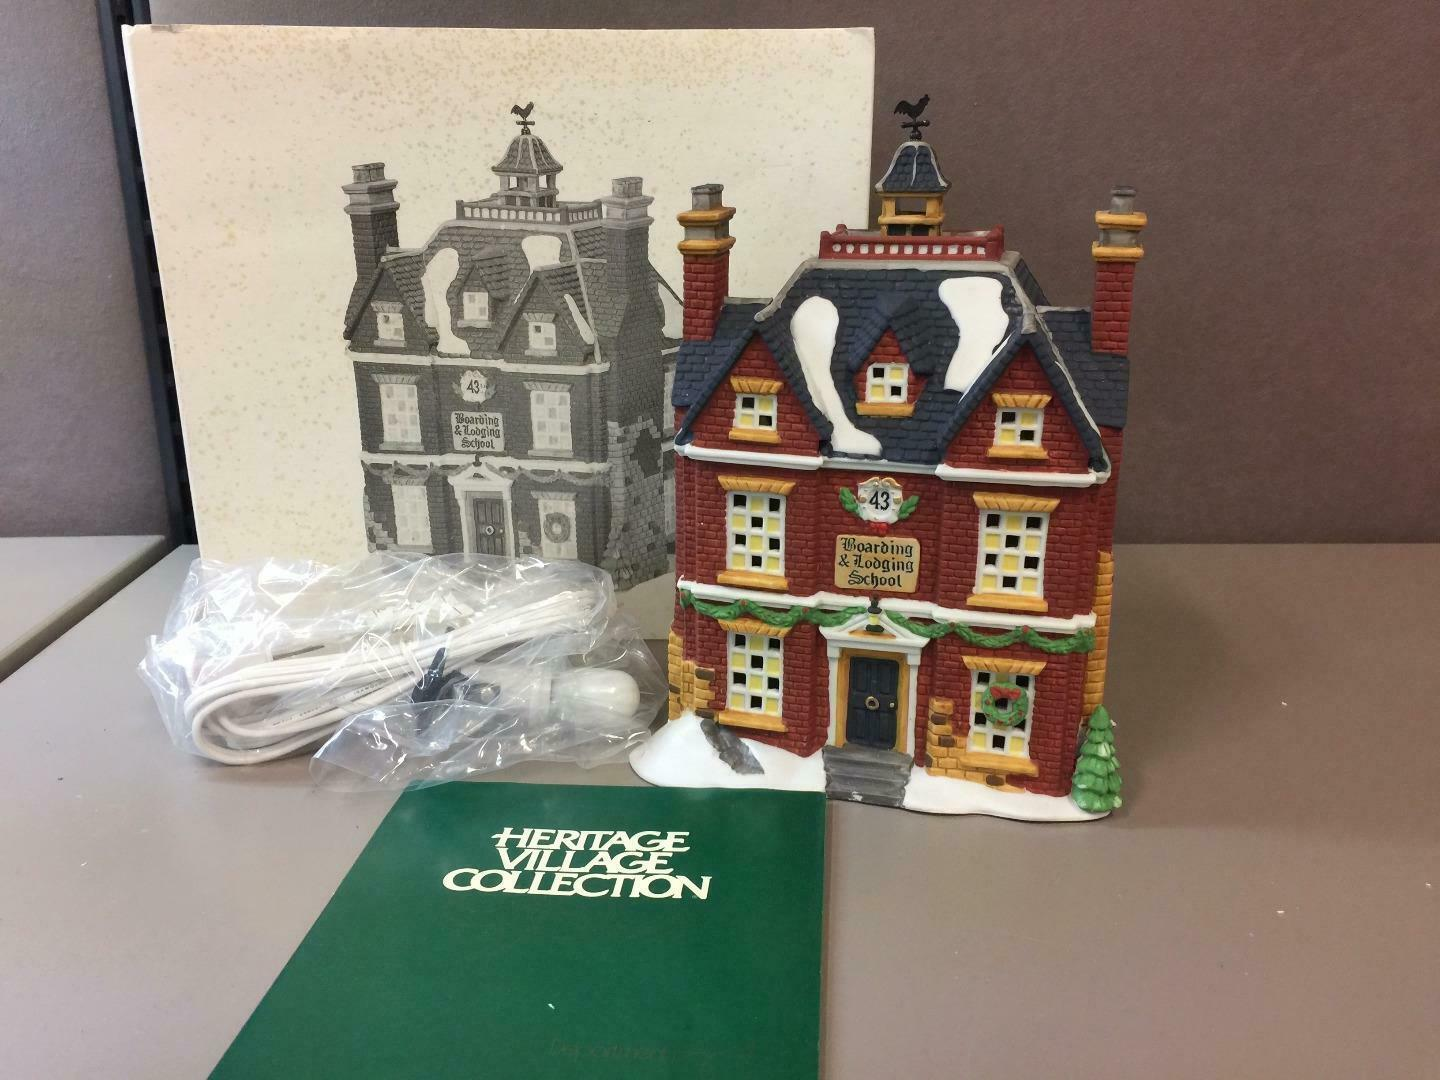 Primary image for Dept 56 Heritage Collection Dickens' Village Series Boarding & Lodging School